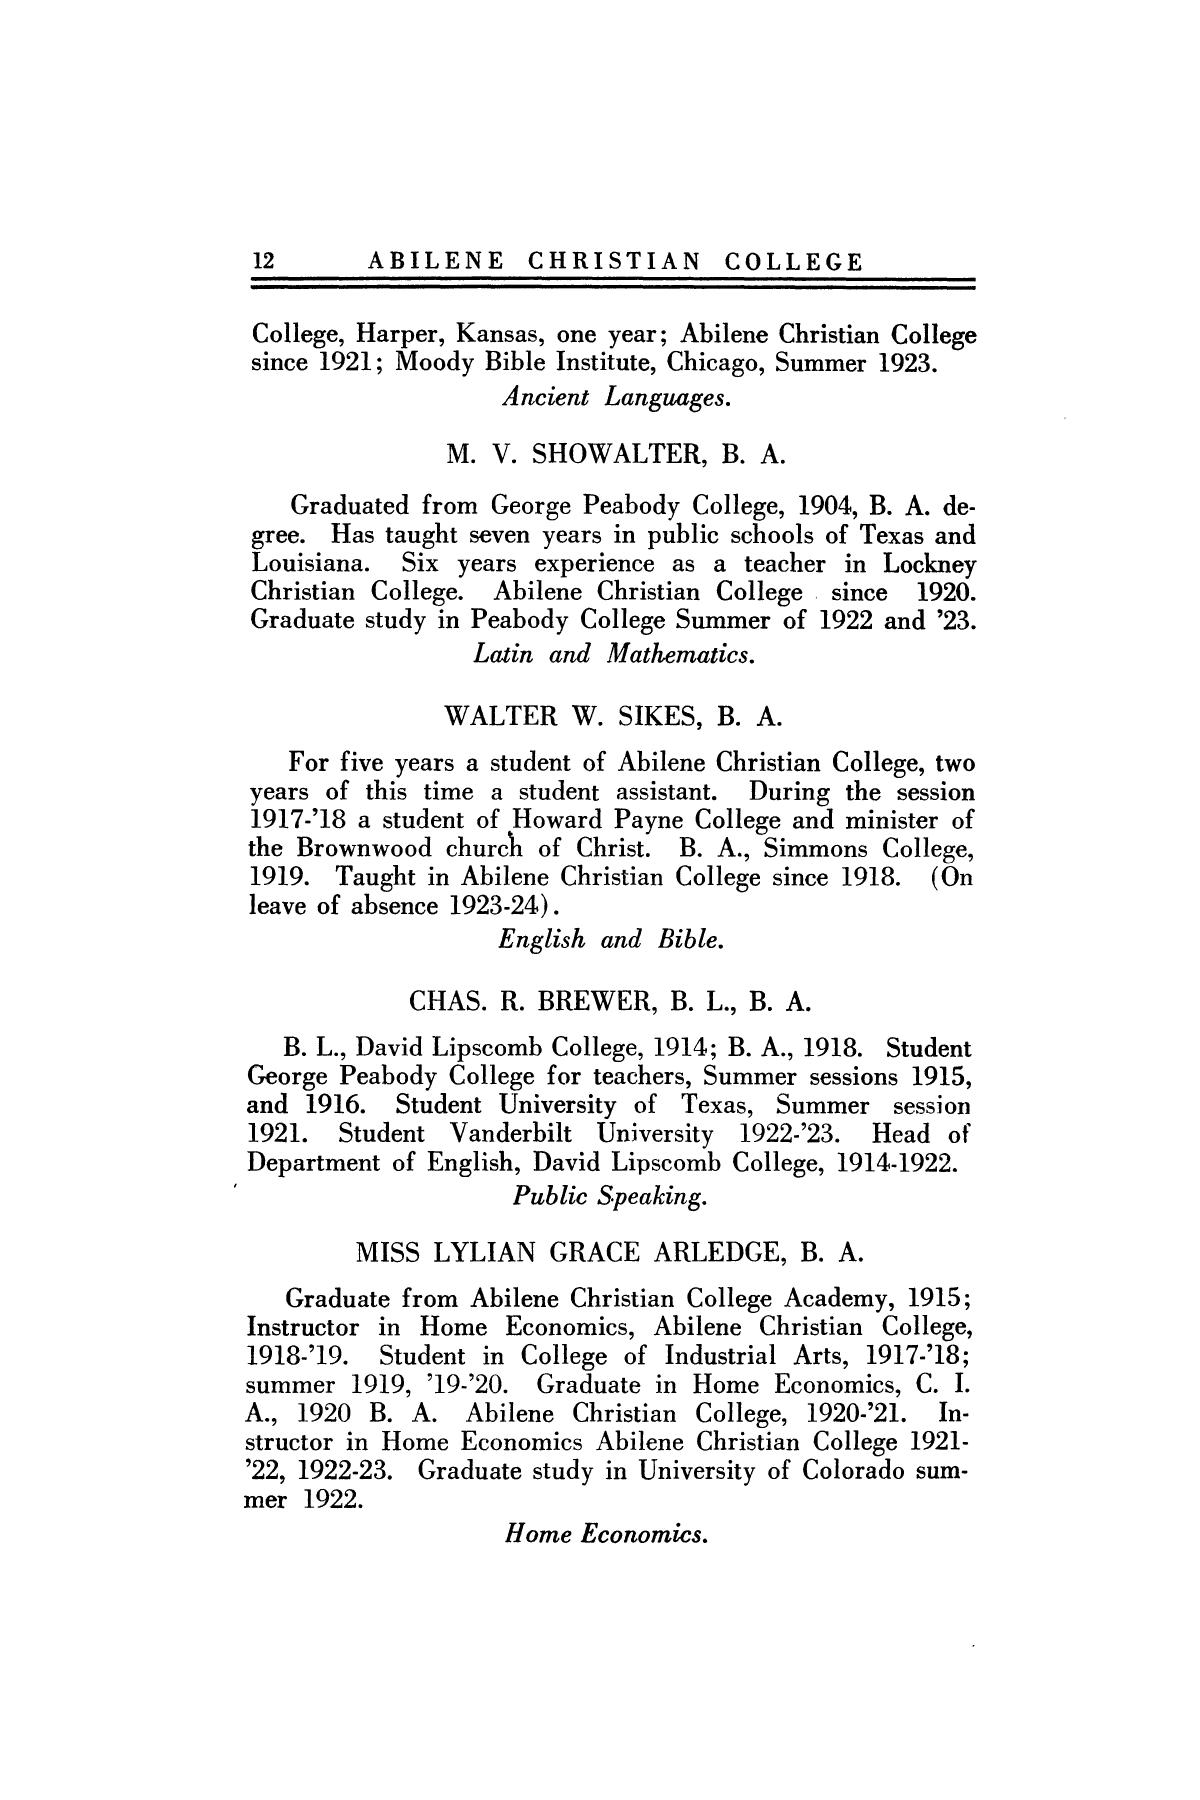 Catalog of Abilene Christian College, 1923-1924                                                                                                      12